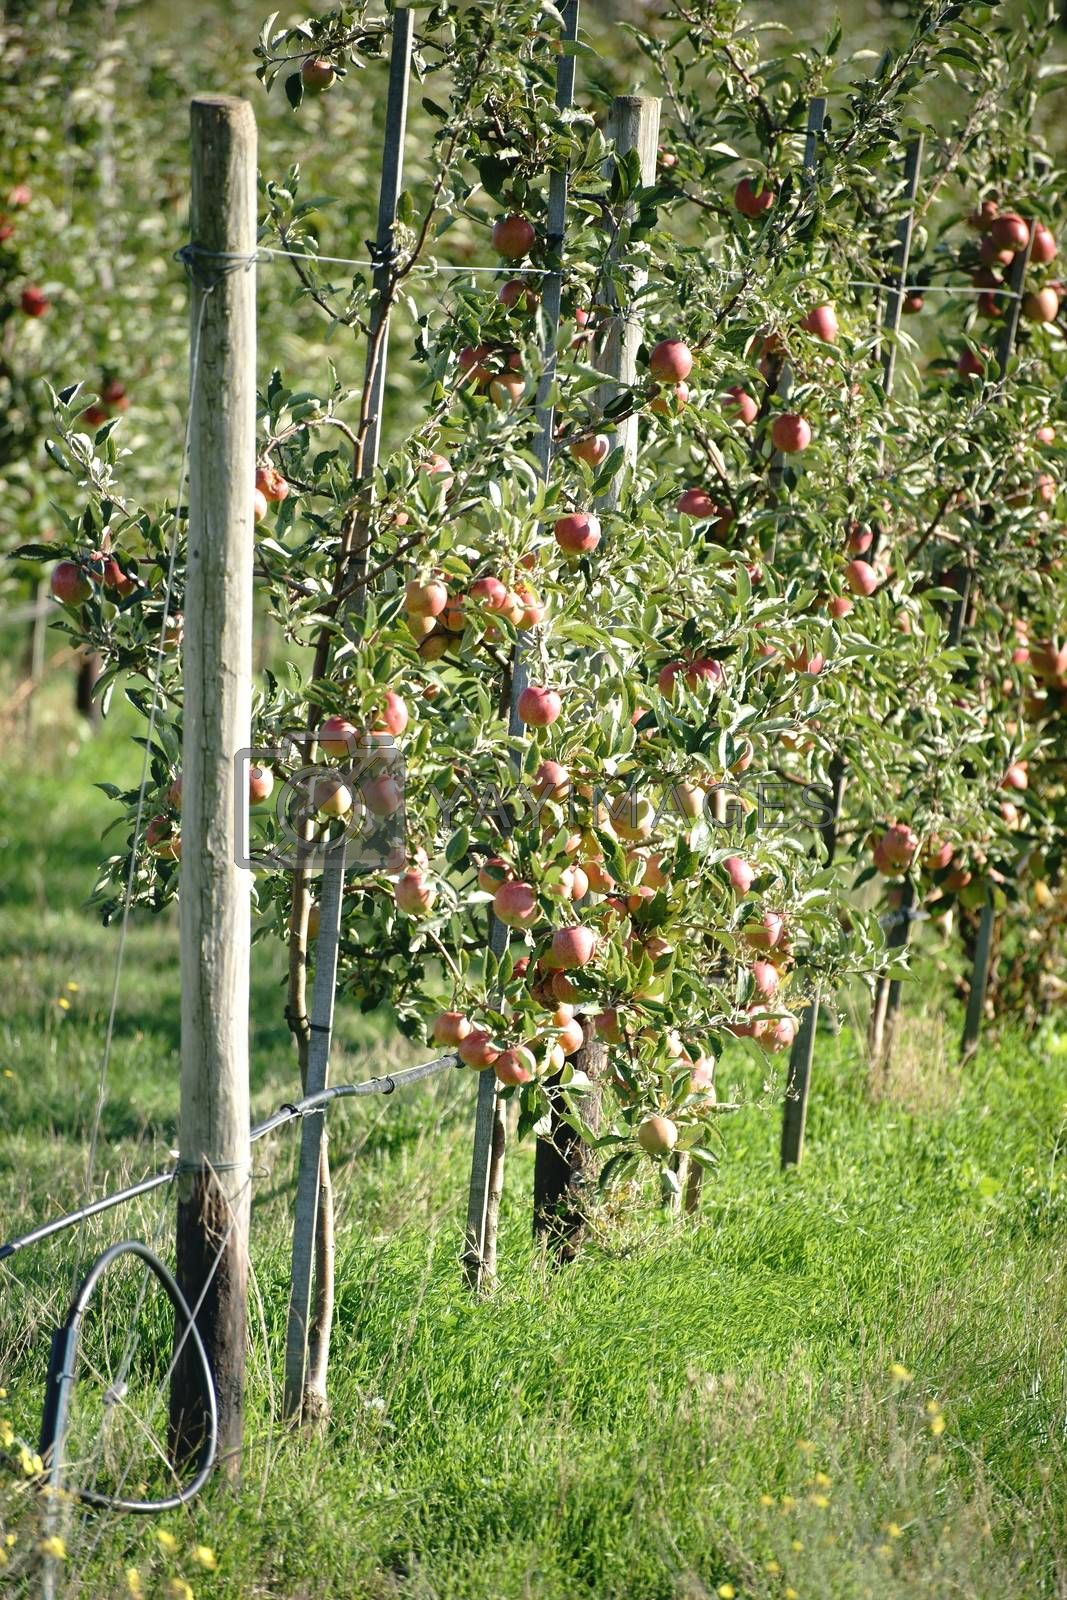 A number of circumcised apple trees in an apple orchard filled with apples.